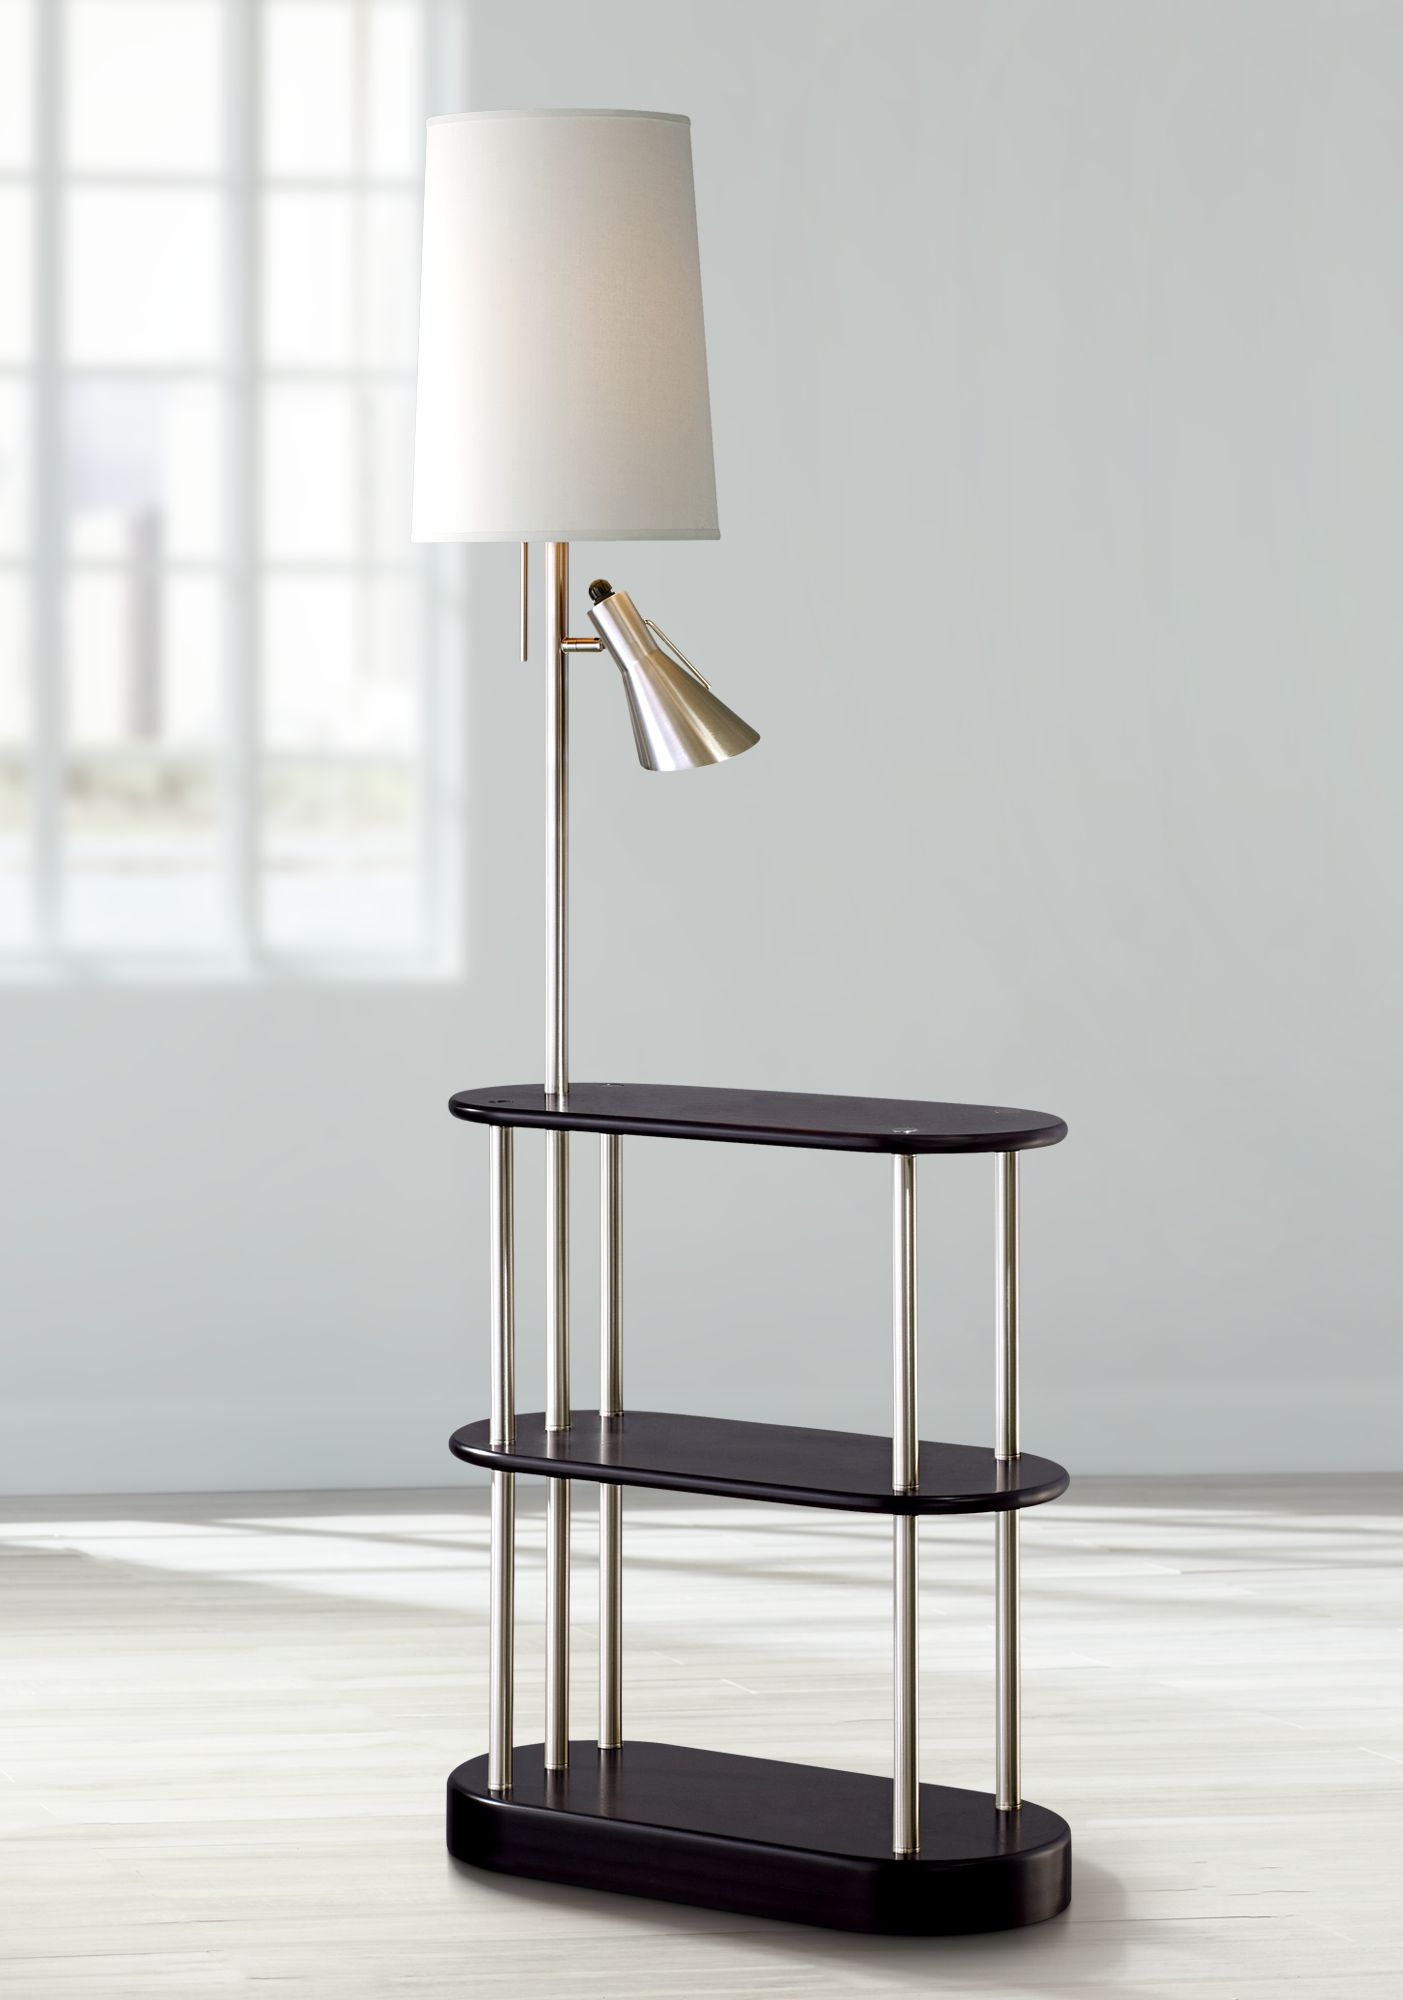 Triple Shelf Brushed Steel Espresso Floor Lamp - #R2602 | Lamps Plus